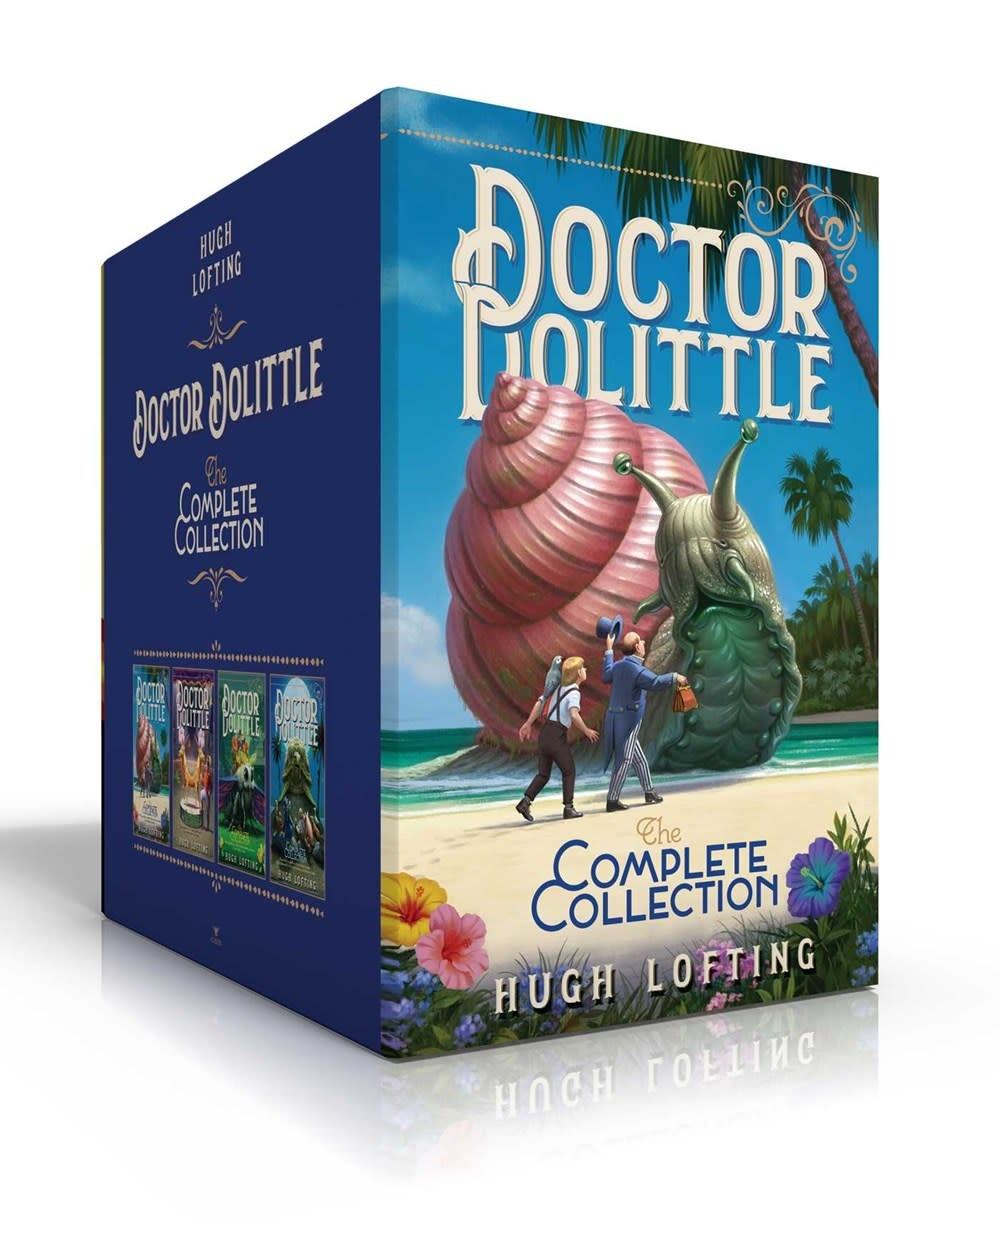 Aladdin Doctor Dolittle The Complete Boxed Set (4 Books)